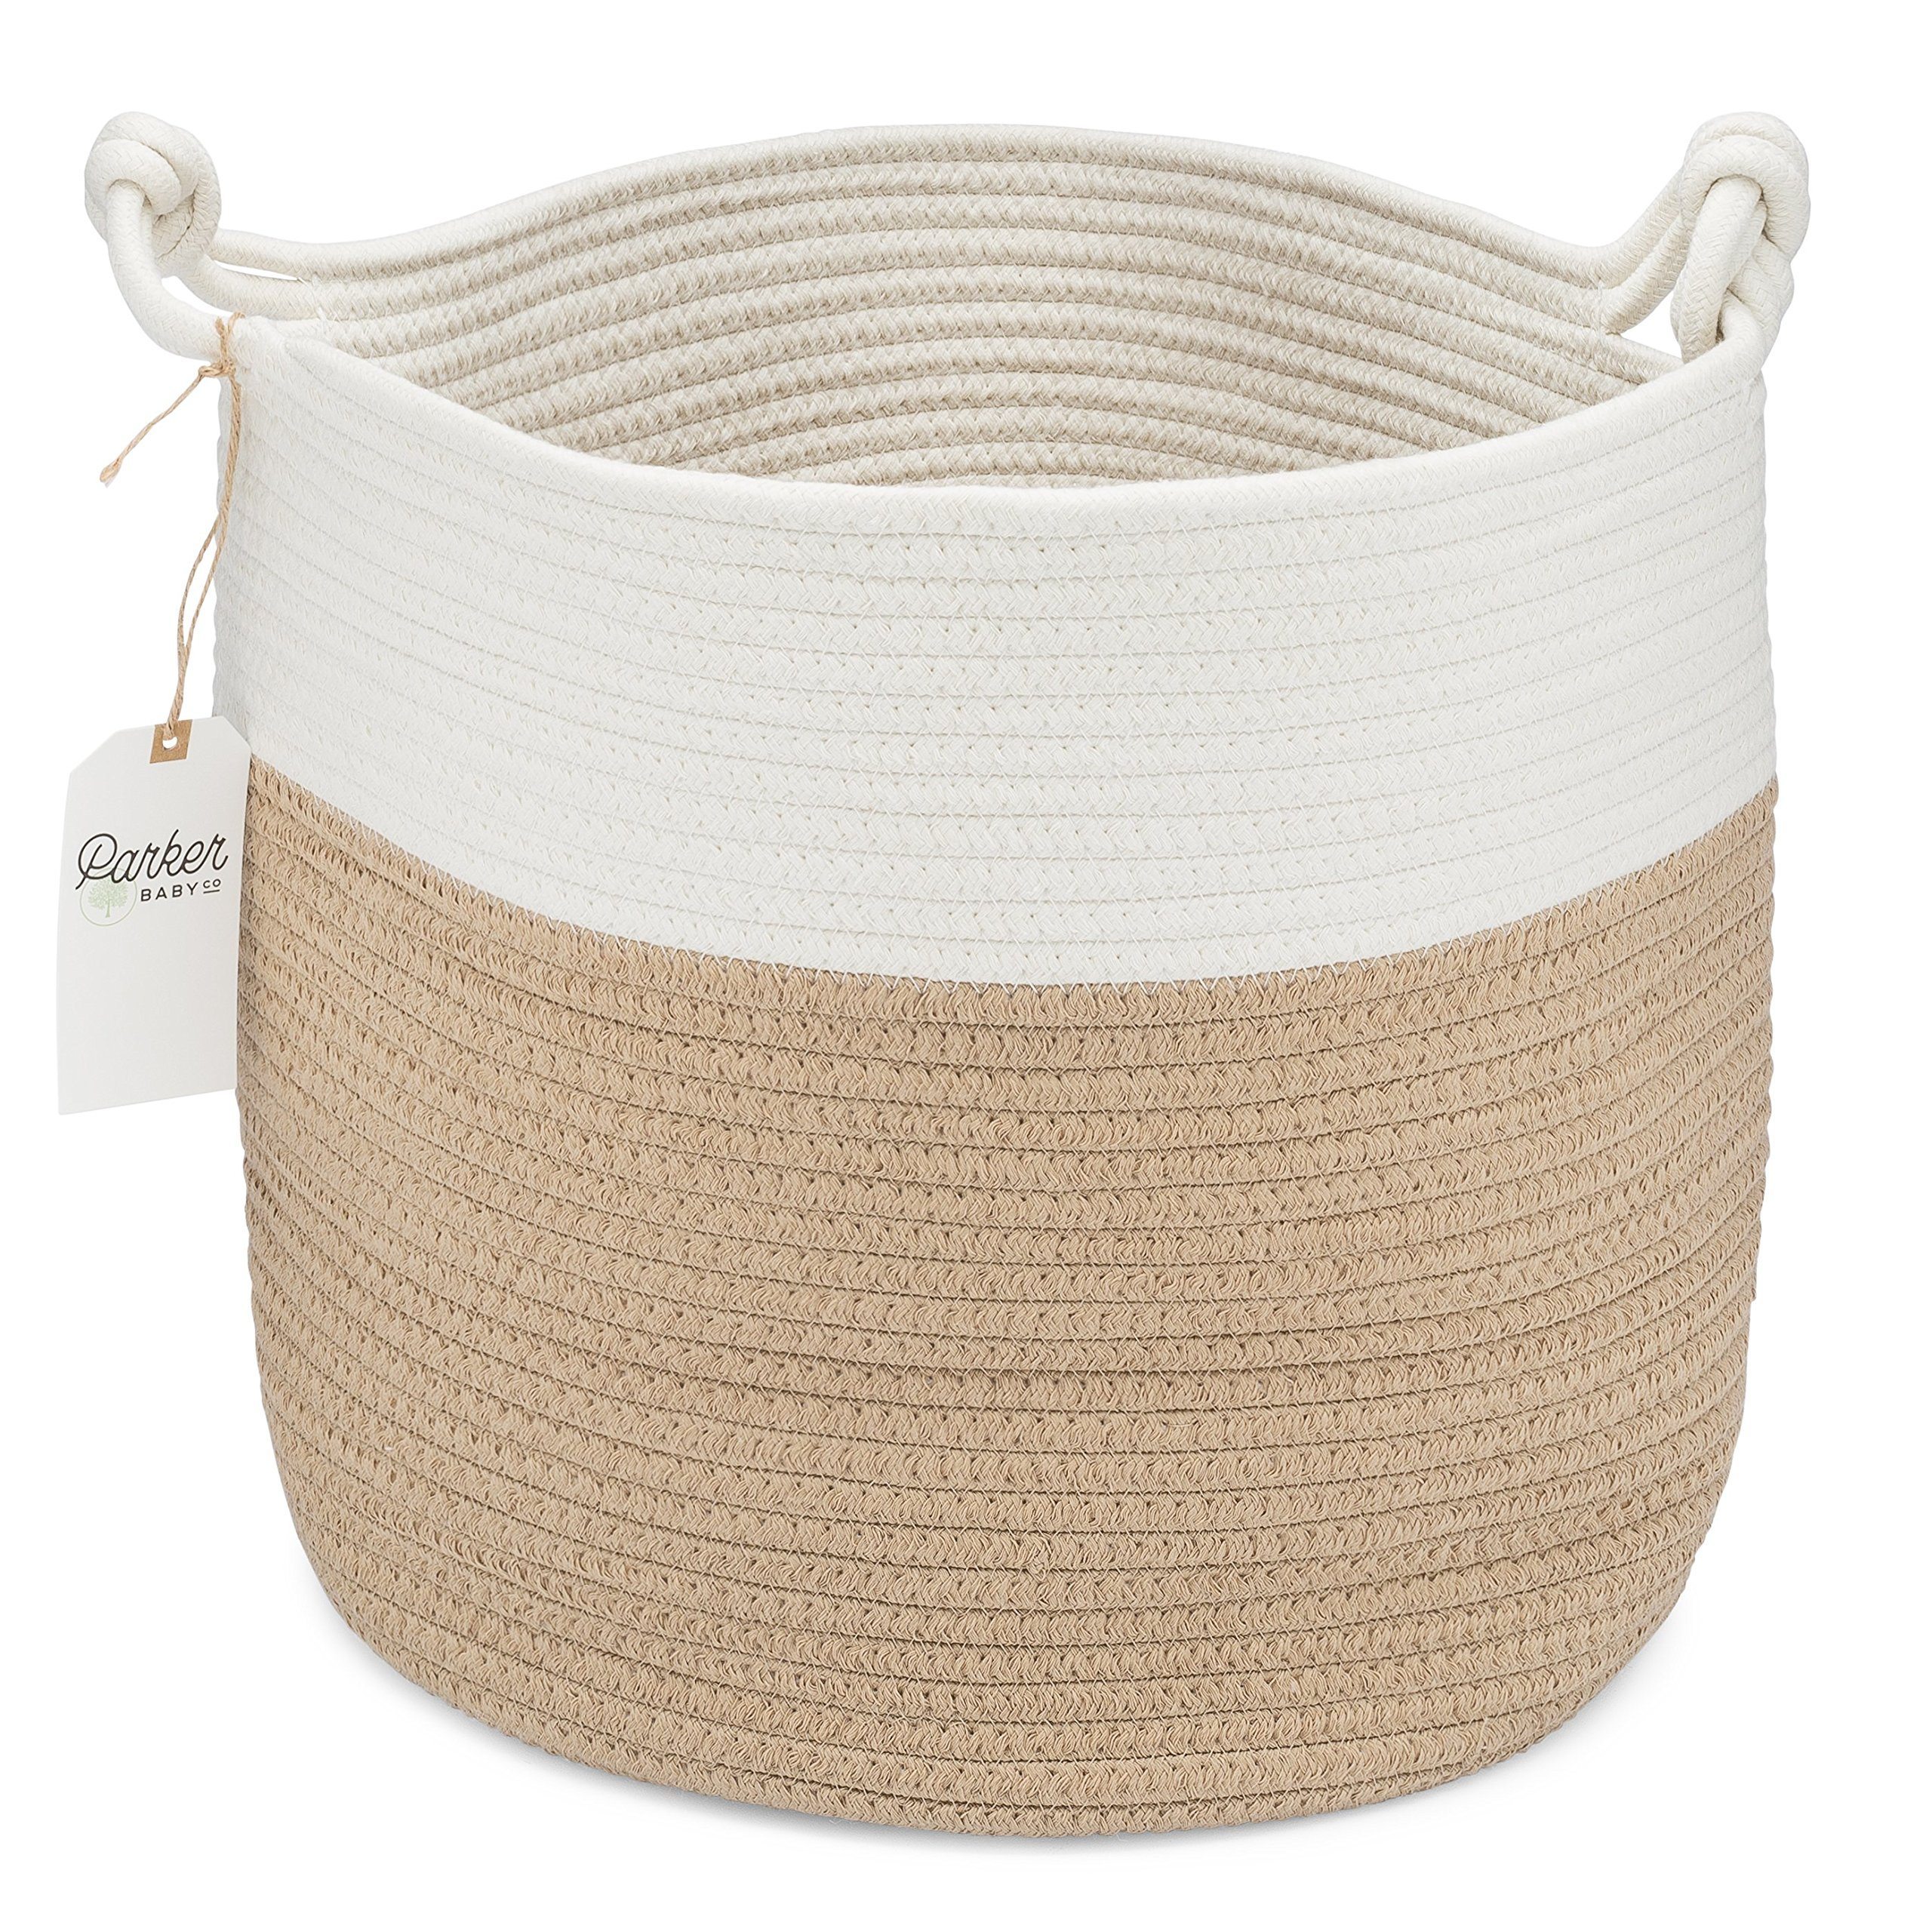 Parker Baby Nursery Storage Basket - Rope Storage Bin and Organizer for Laundry, Toys and Baby Blankets by Parker Baby Co.